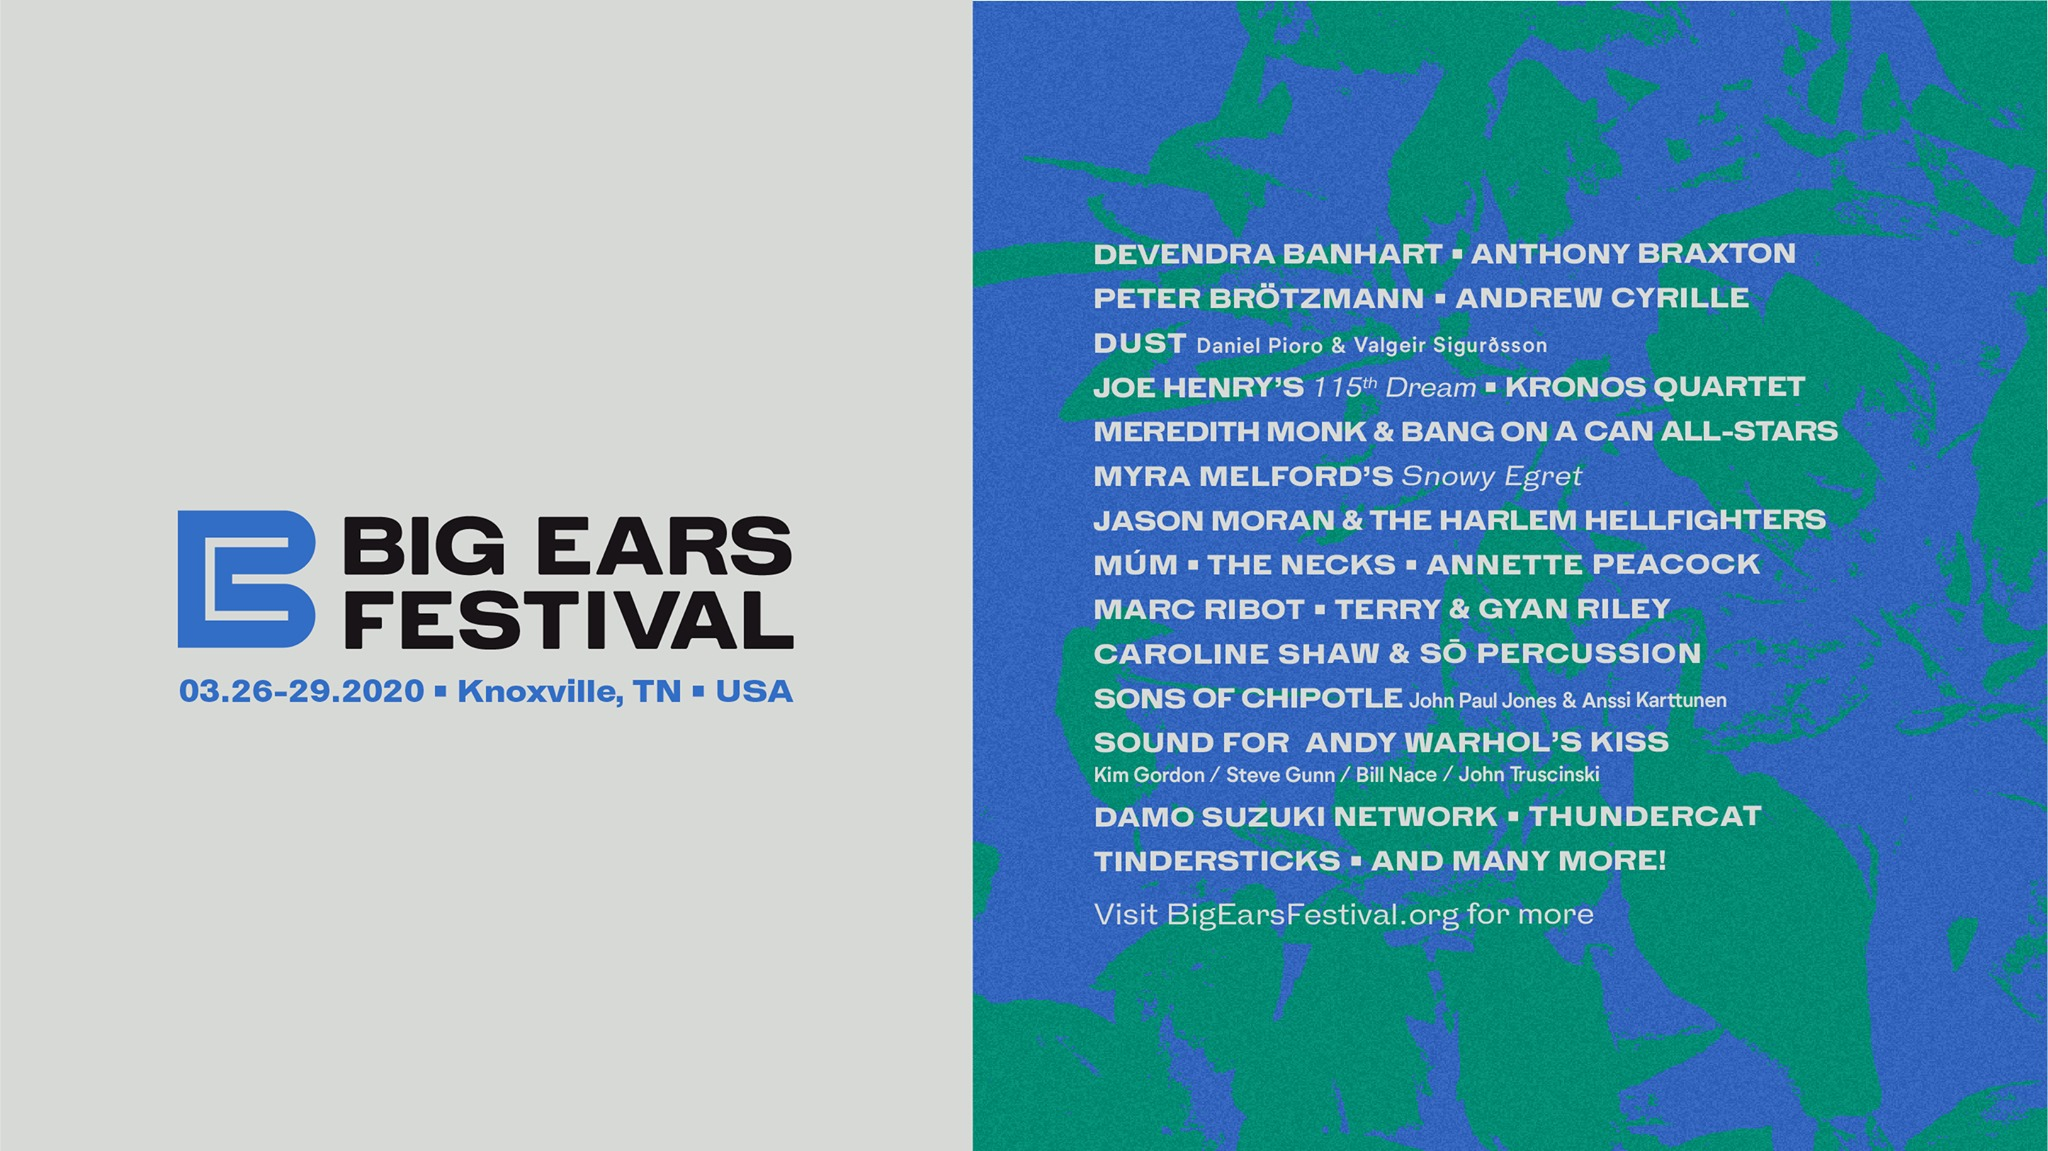 Tennessee festival Big Ears unveils 2020 lineup with Anthony Braxton, Terry Riley, Jlin